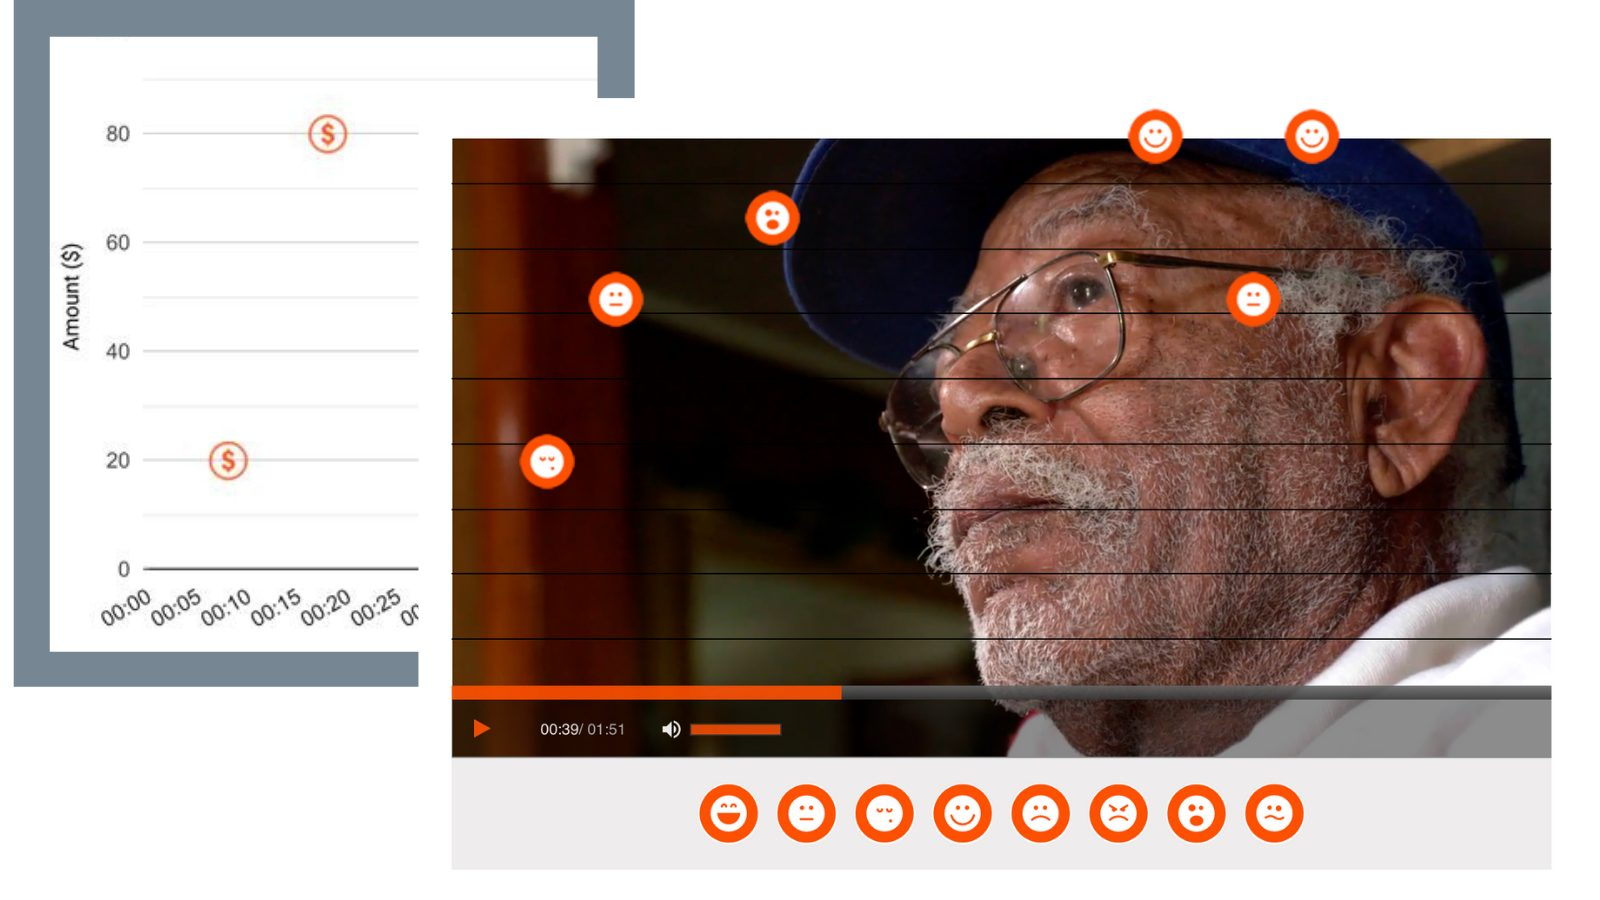 Track video fundraising effectiveness with real-time reports and timestamp donations